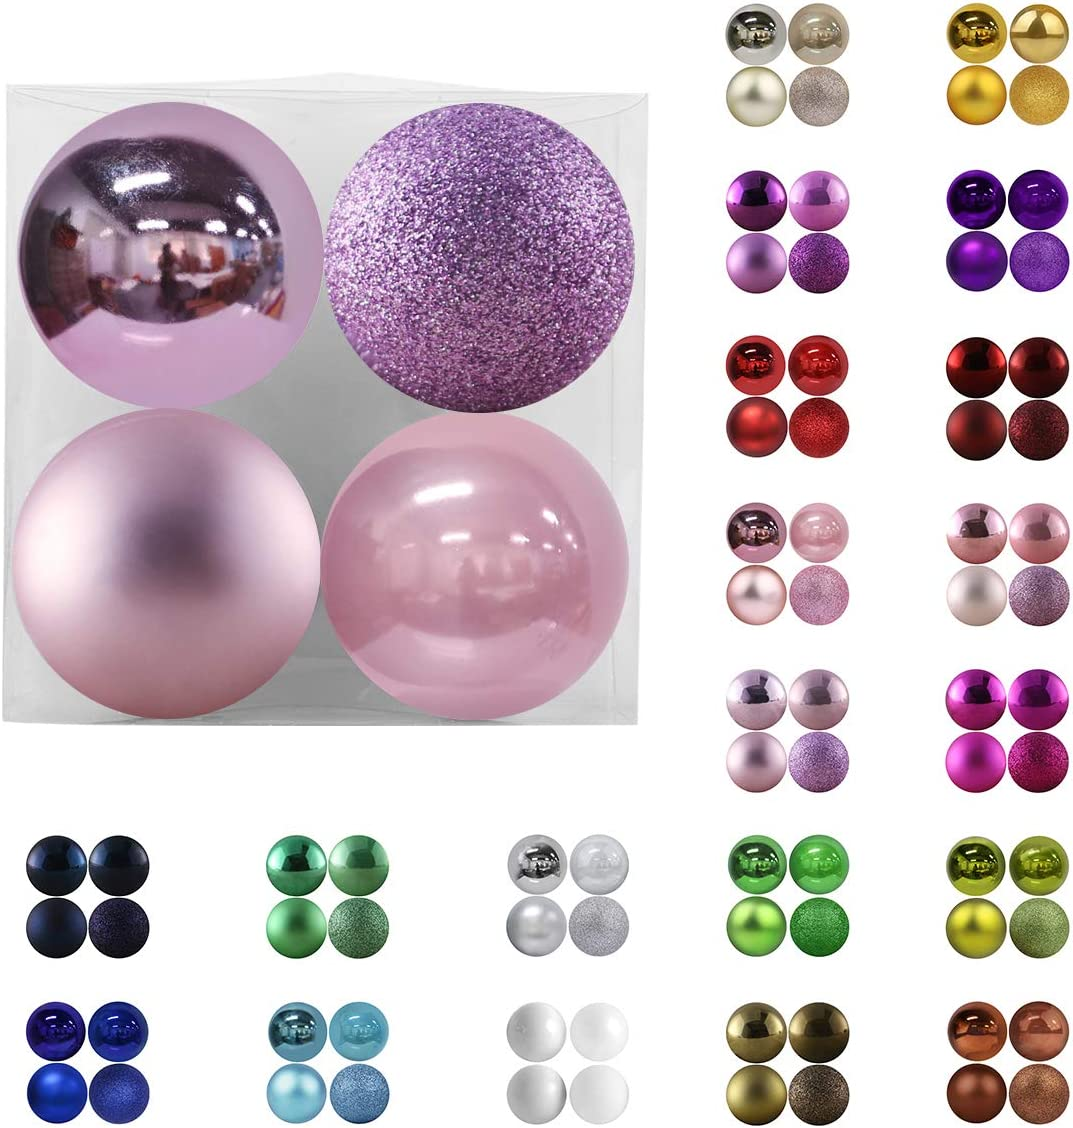 """Christmas Balls Ornaments for Xmas Tree - Shatterproof Christmas Tree Decorations Large Hanging Ball Lavender Purple 4.0"""" x 4 Pack"""